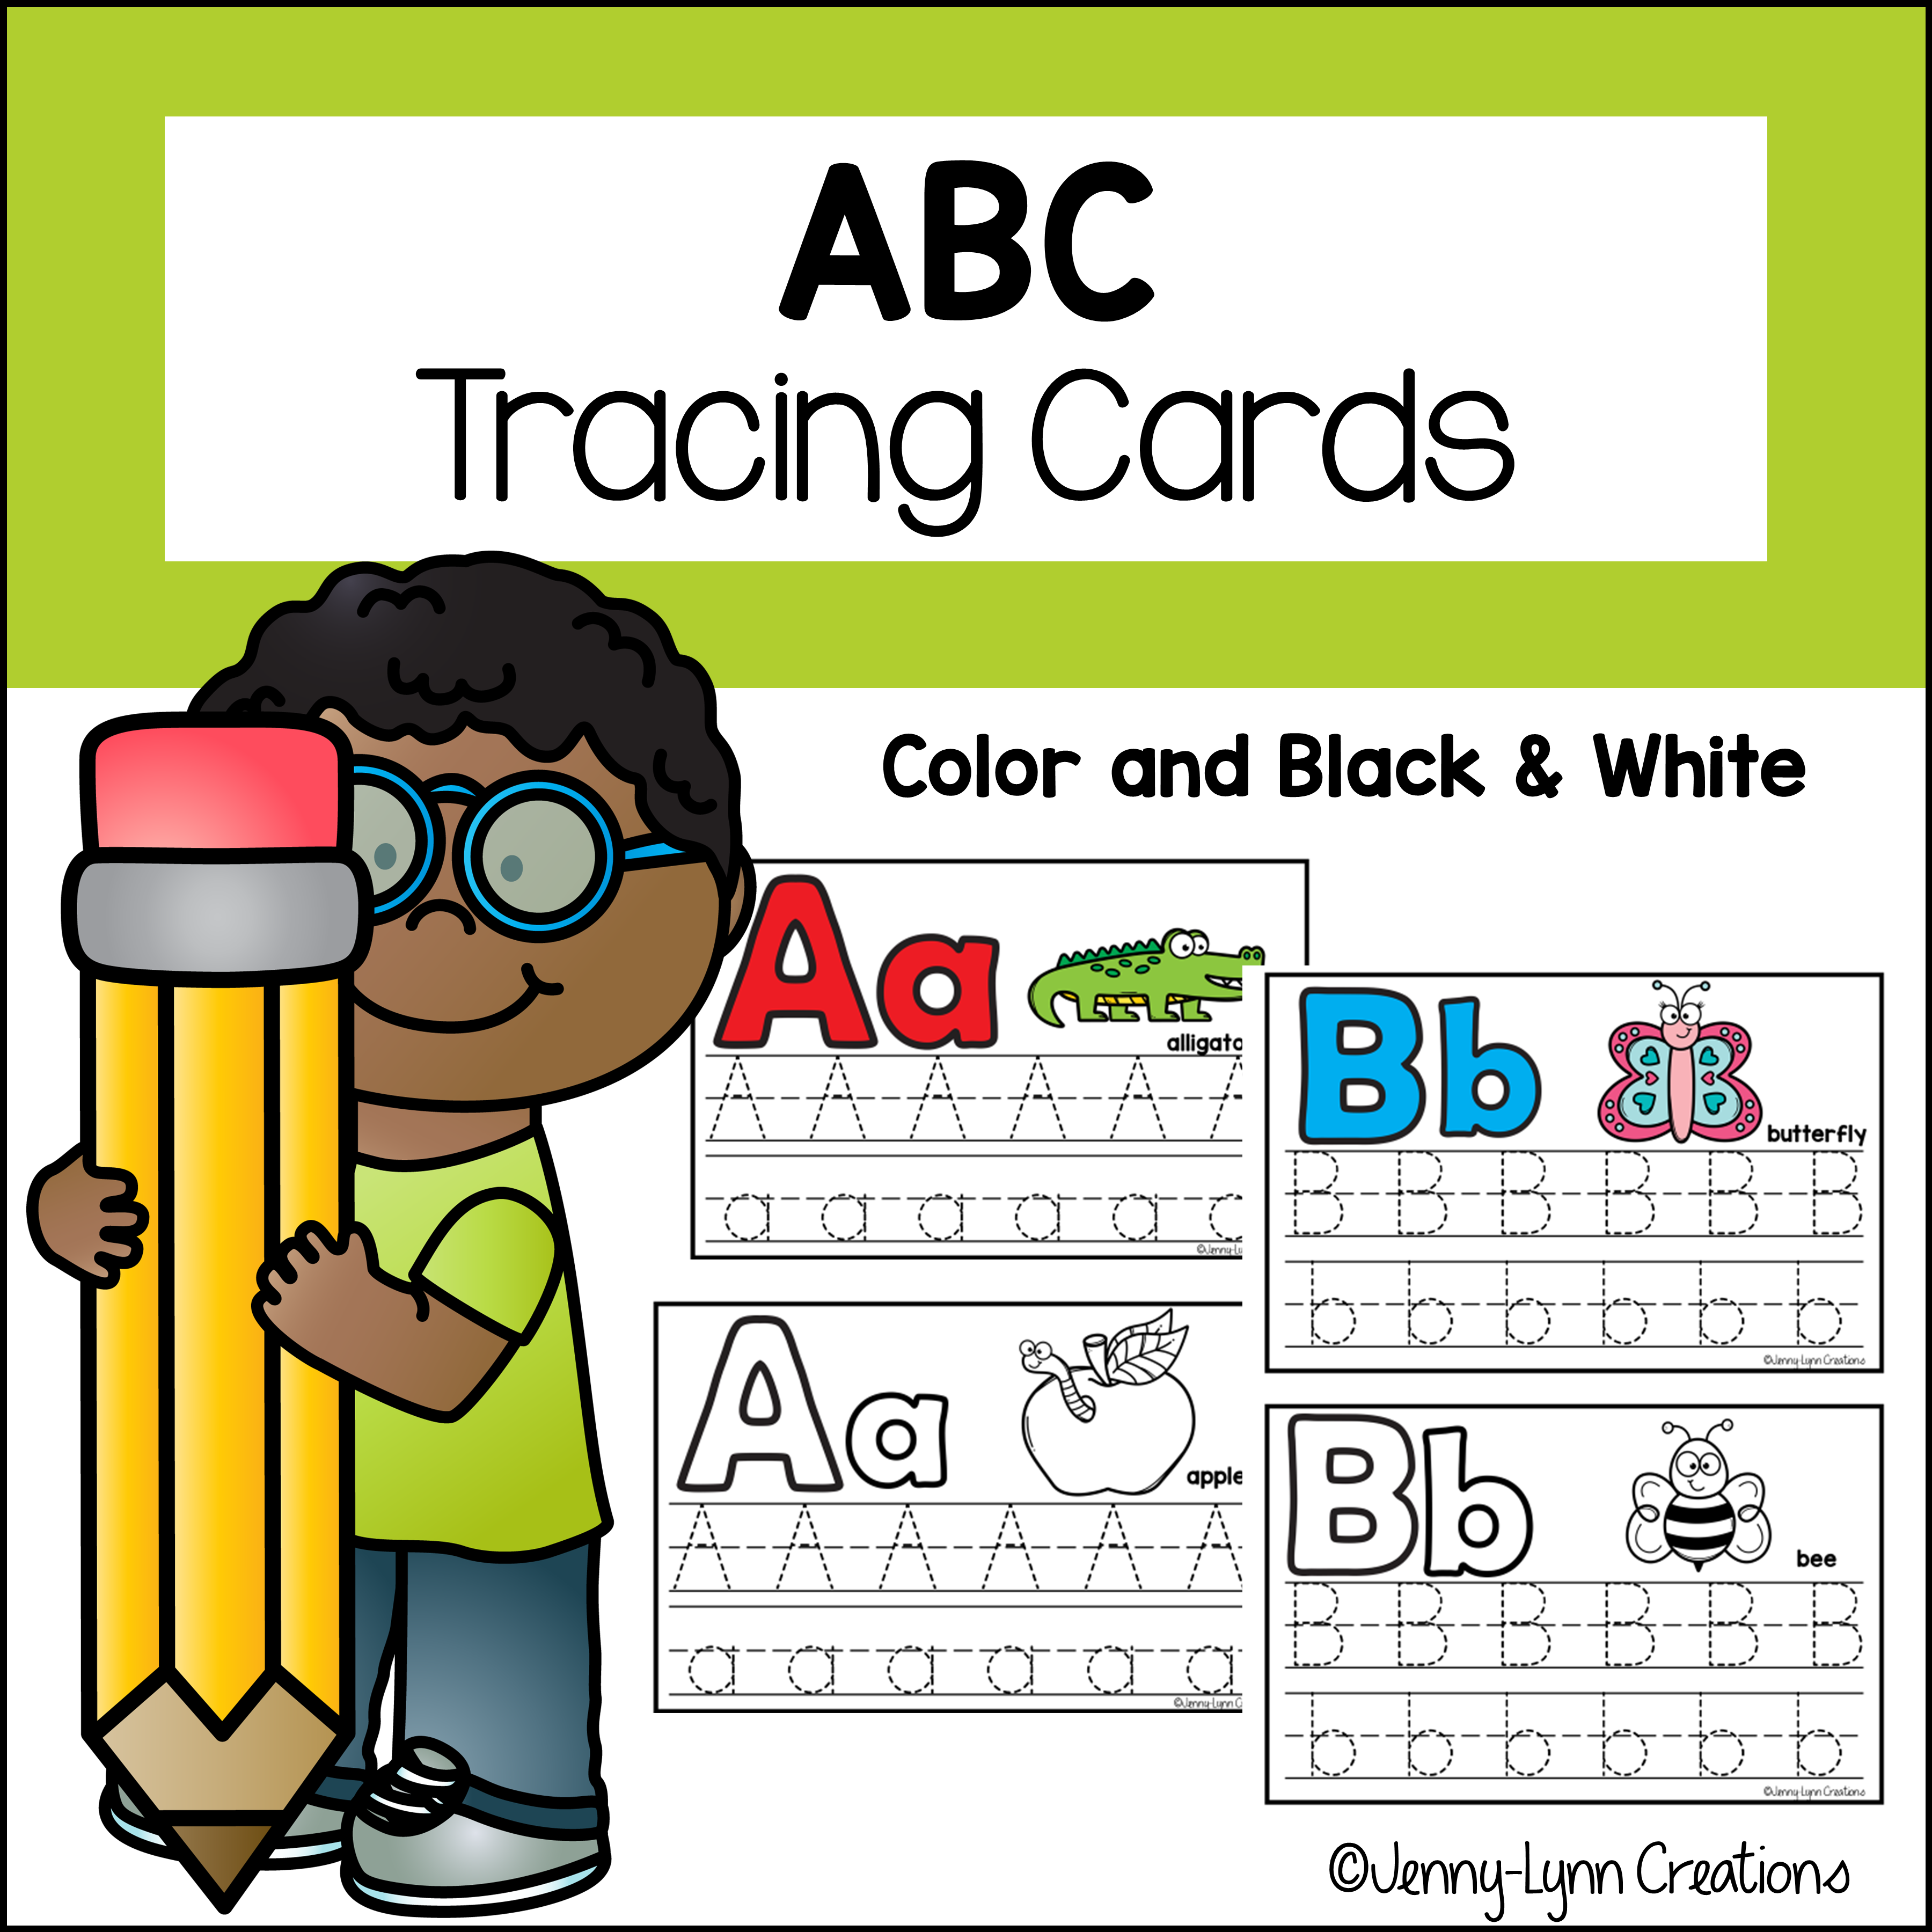 ABC Tracing Cards to Print